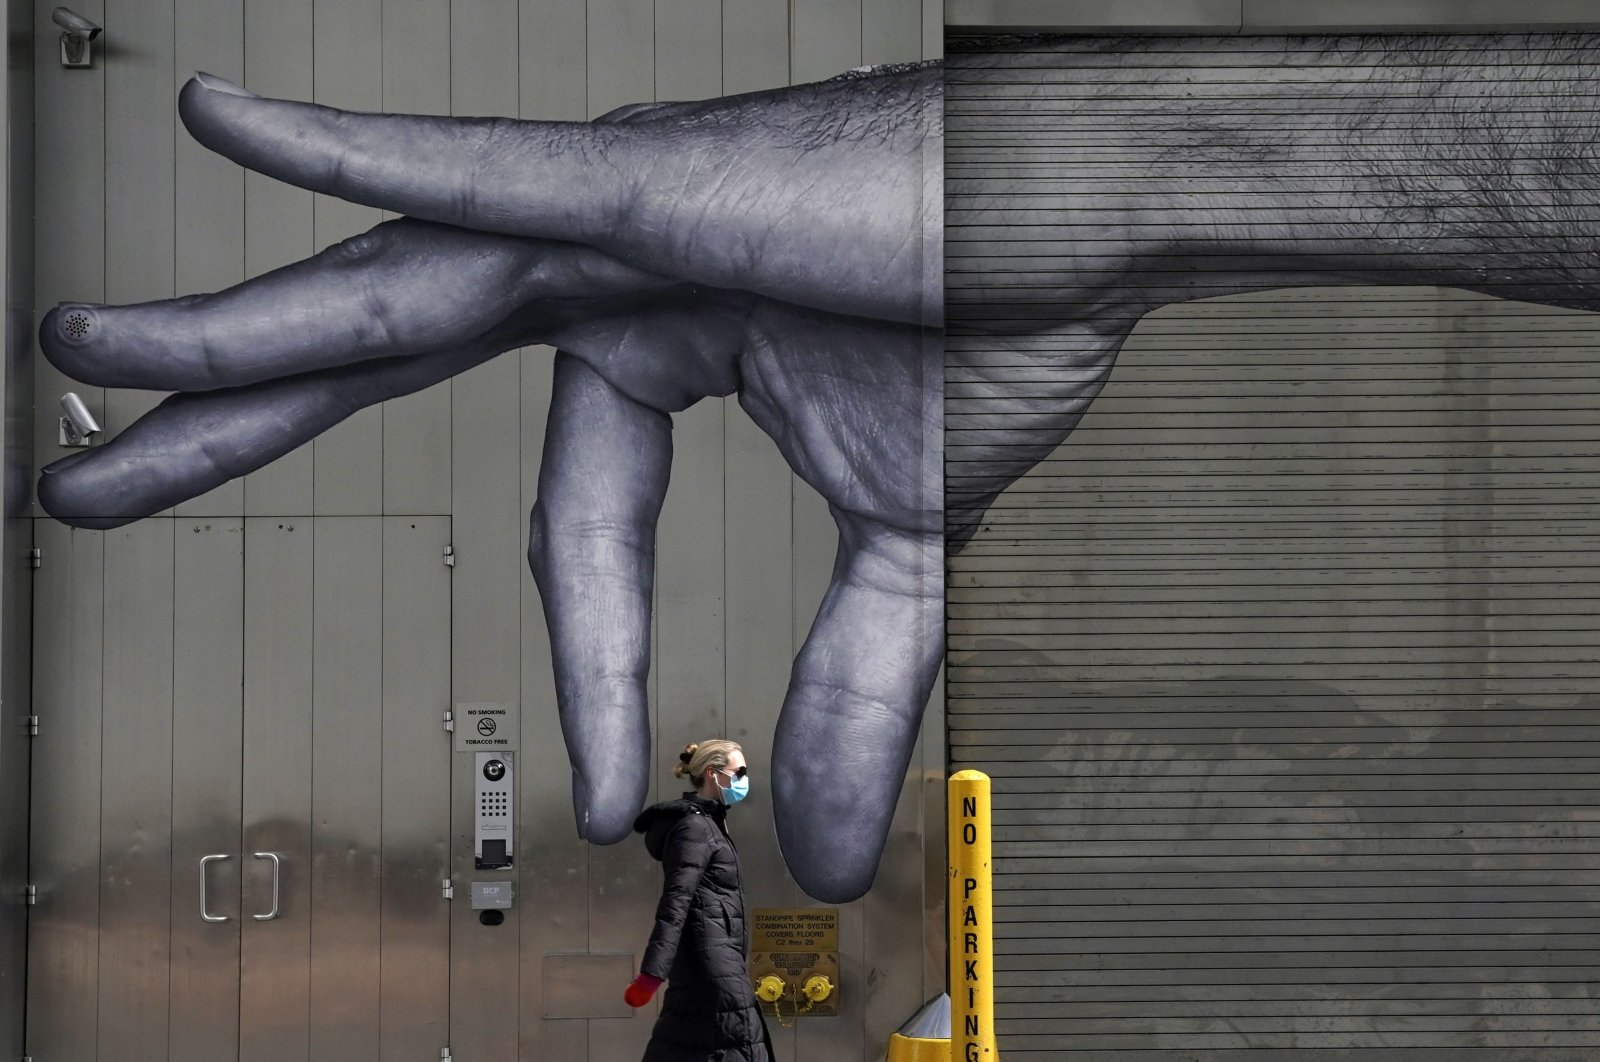 A woman in a mask walks past a mural of a hand on the side of a building in Midtown New York City, Apr. 22, 2020. (AFP PHOTO)